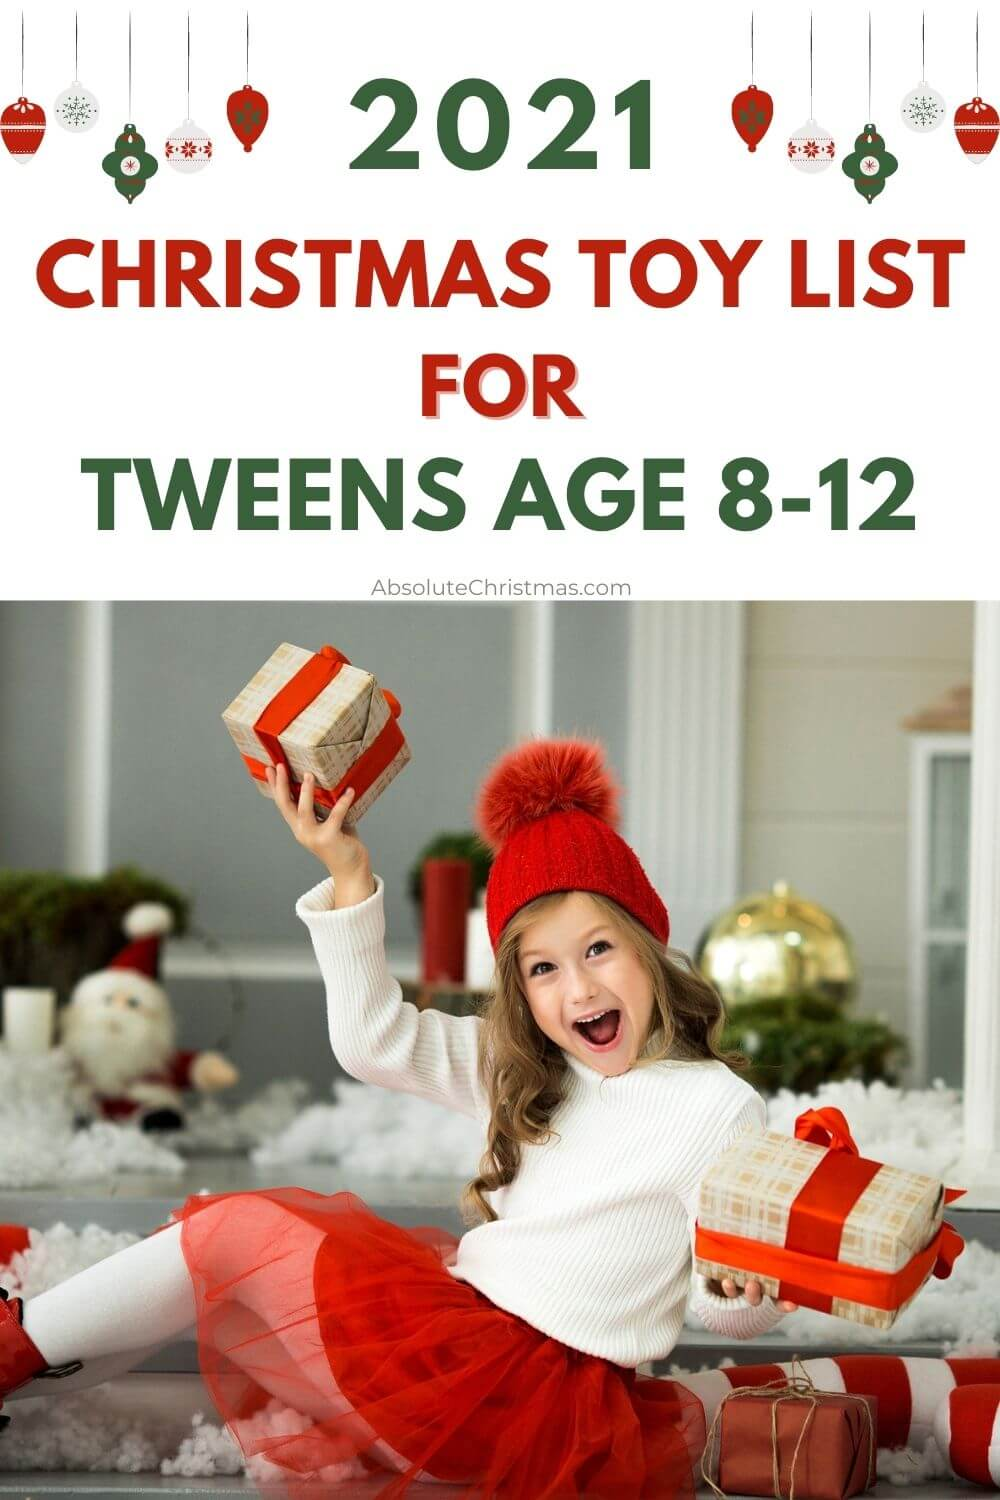 Top Christmas Toys for Tweens Age 8-12 - Holiday Toy Guide